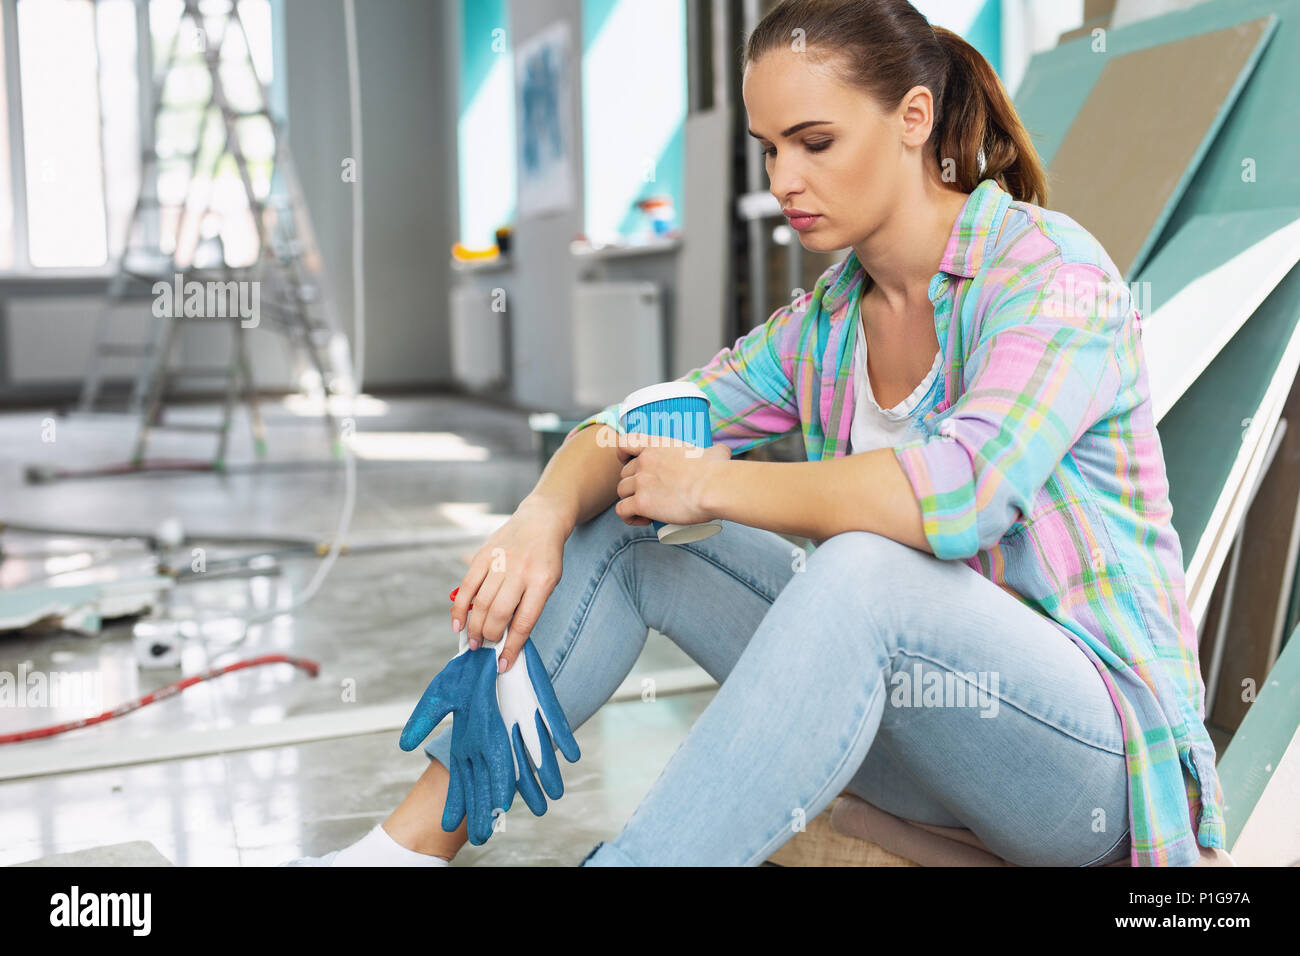 Exhausted young woman having a break - Stock Image